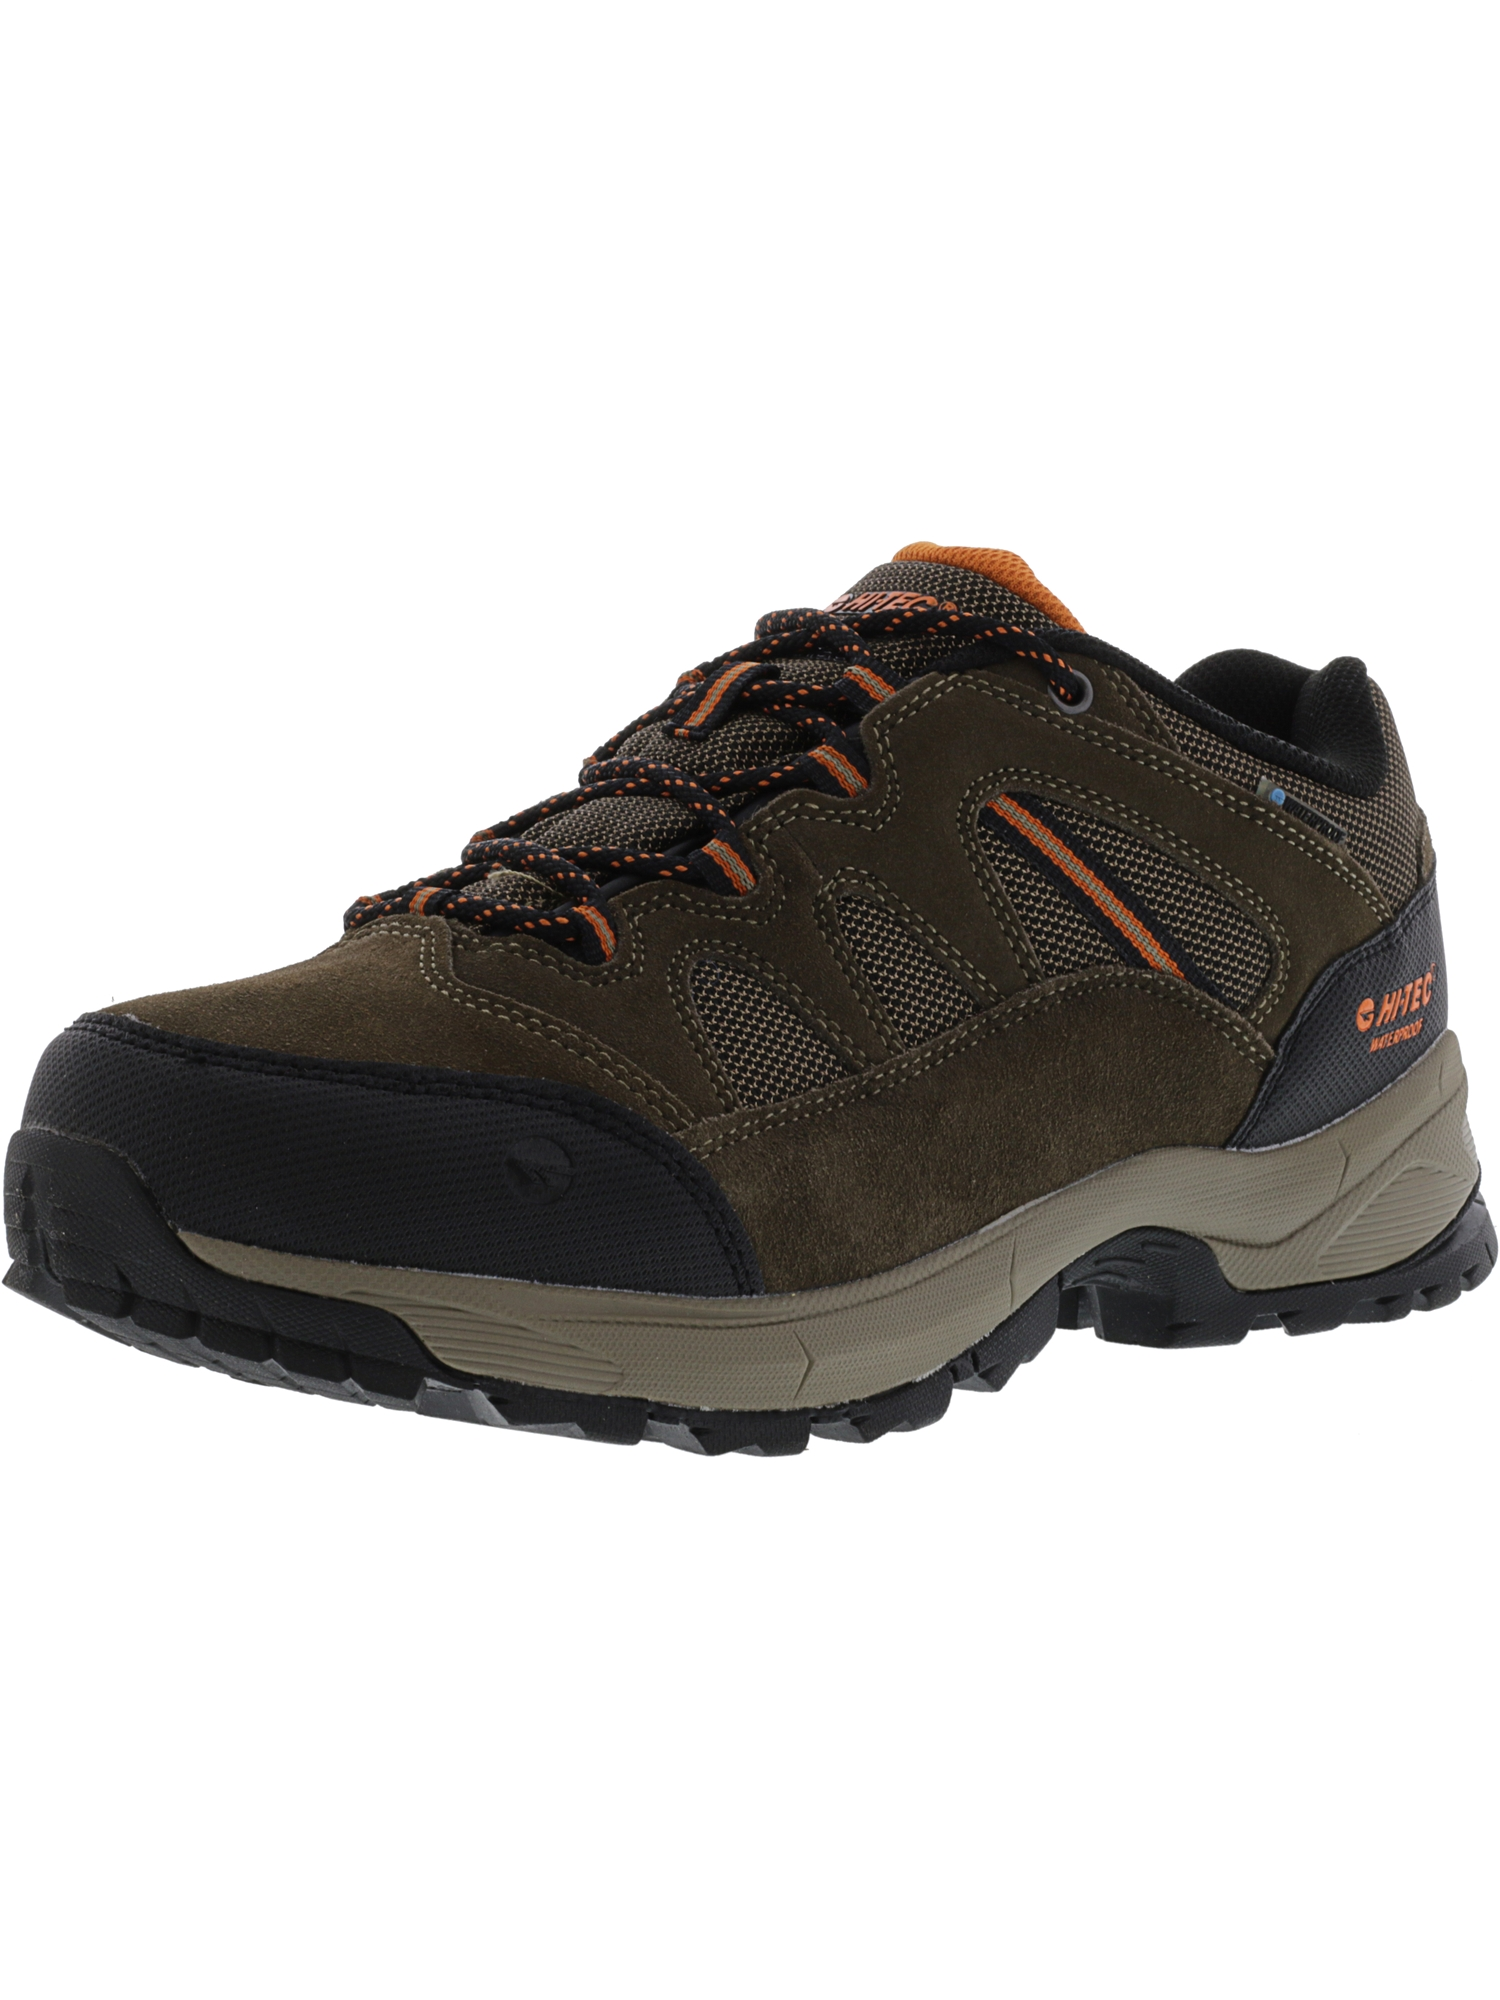 Hi-Tec Men's Ridge Low Waterproof I Brown Ankle-High Leather Hiking Shoe 8M by Hi-Tec